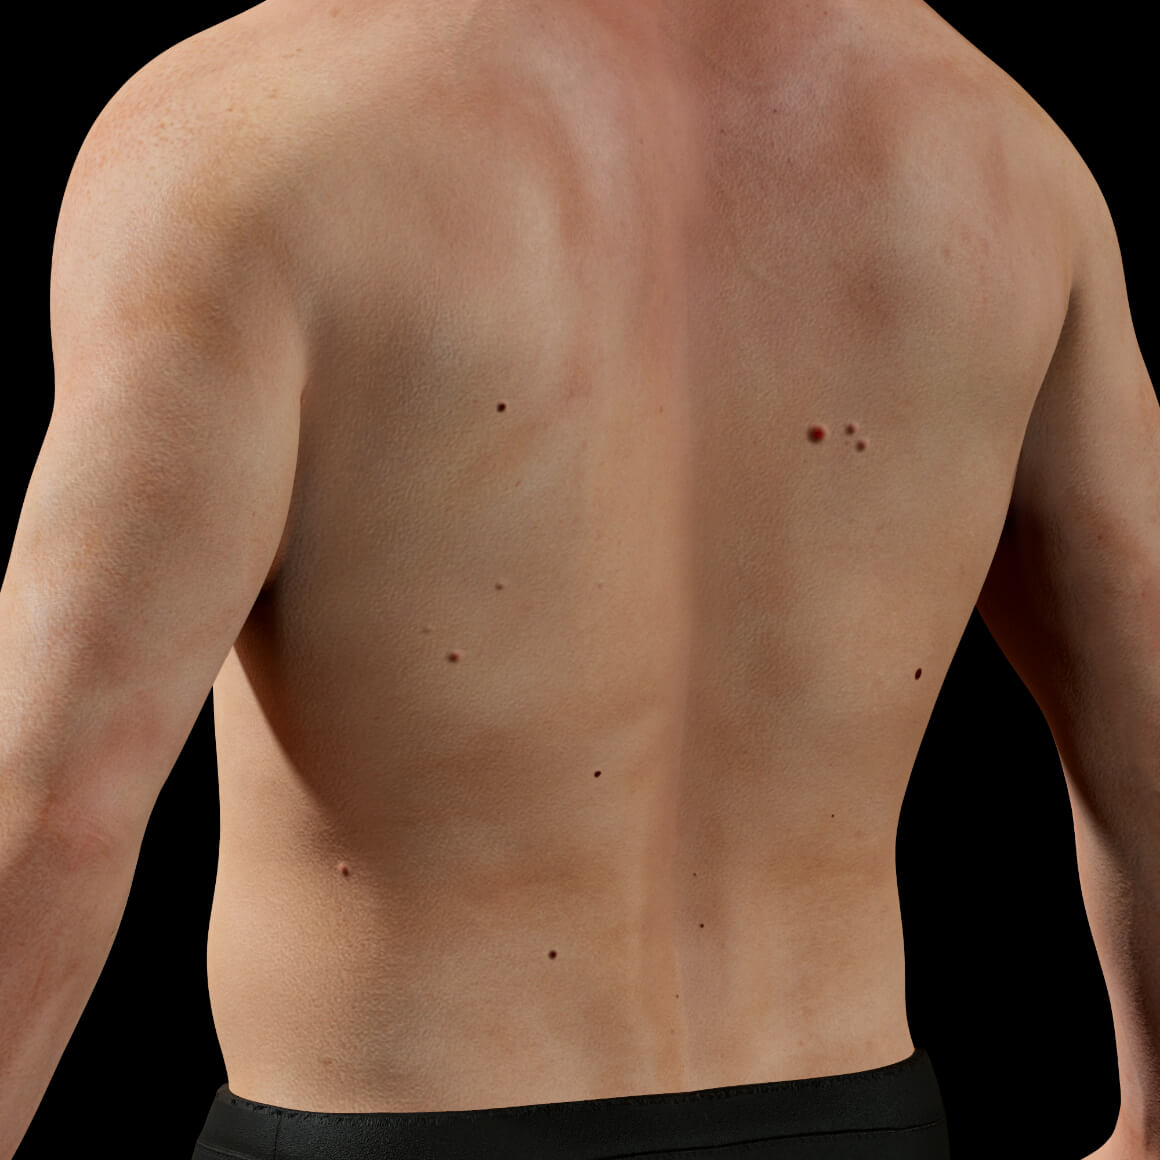 45-degree angle of the back of a male patient at Clinique Chloé showing cherry angiomas